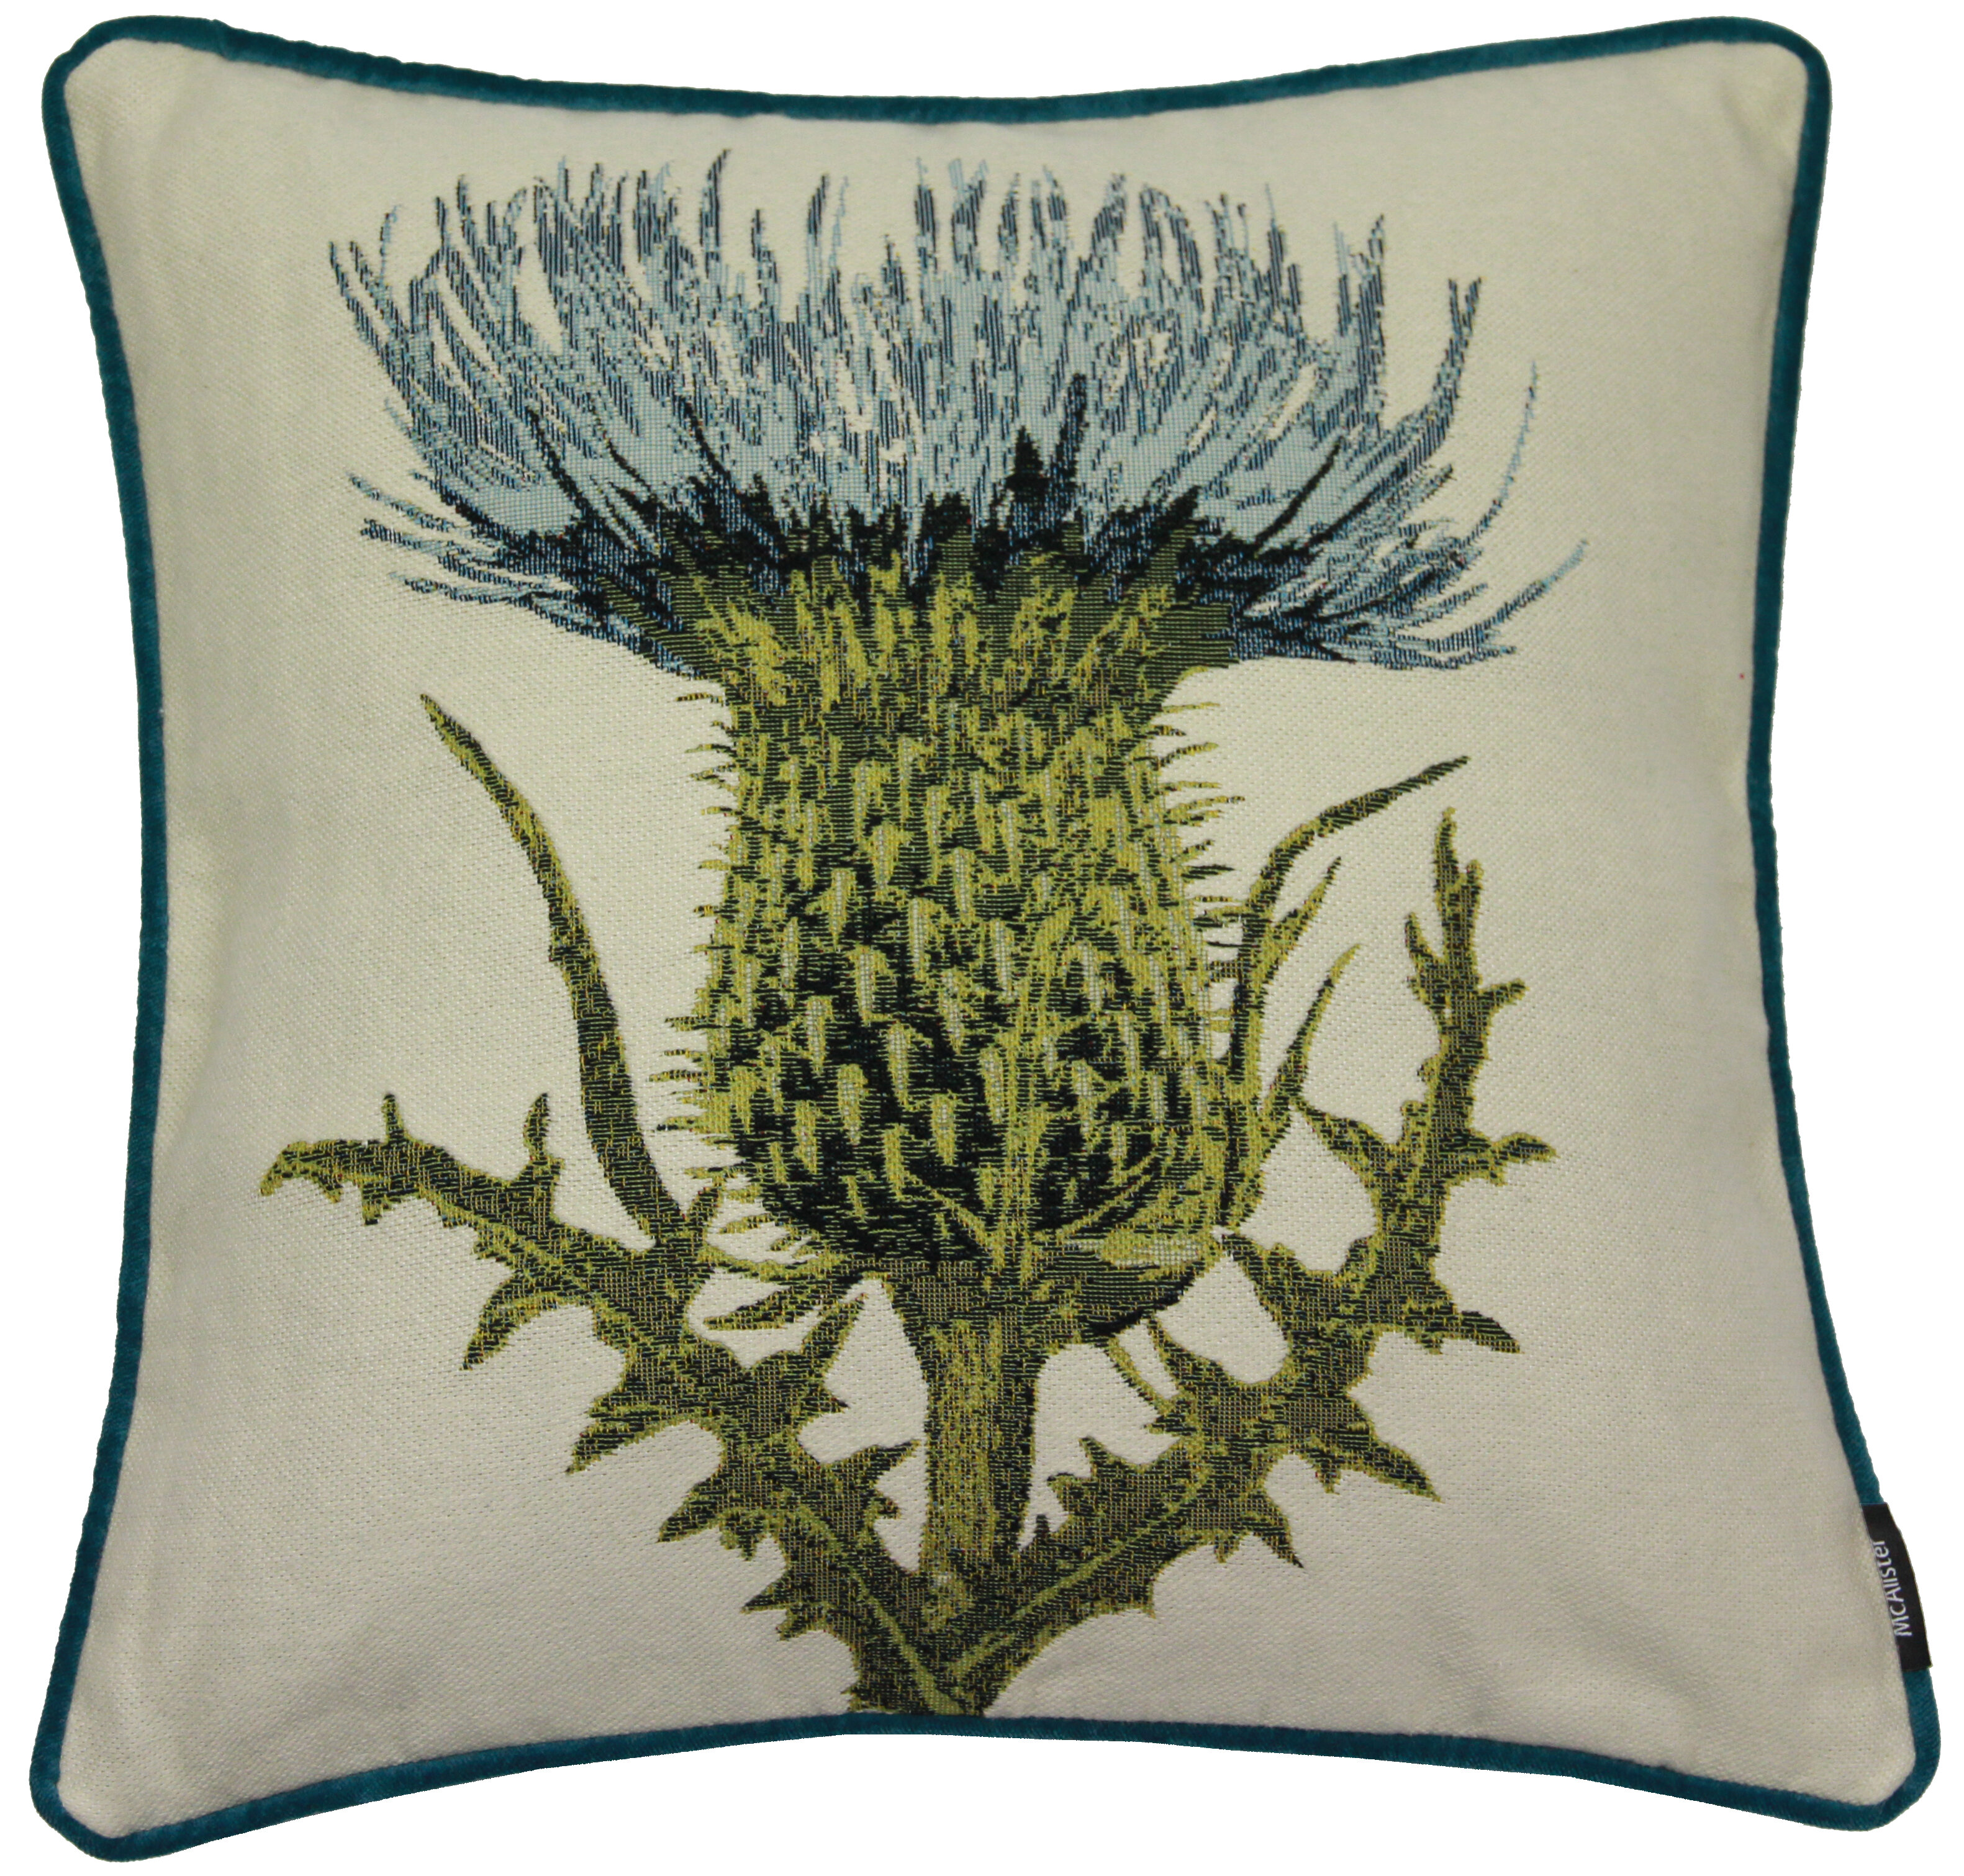 Mcalistertextiles Thistle Outdoor Square Pillow Cover Insert Wayfair